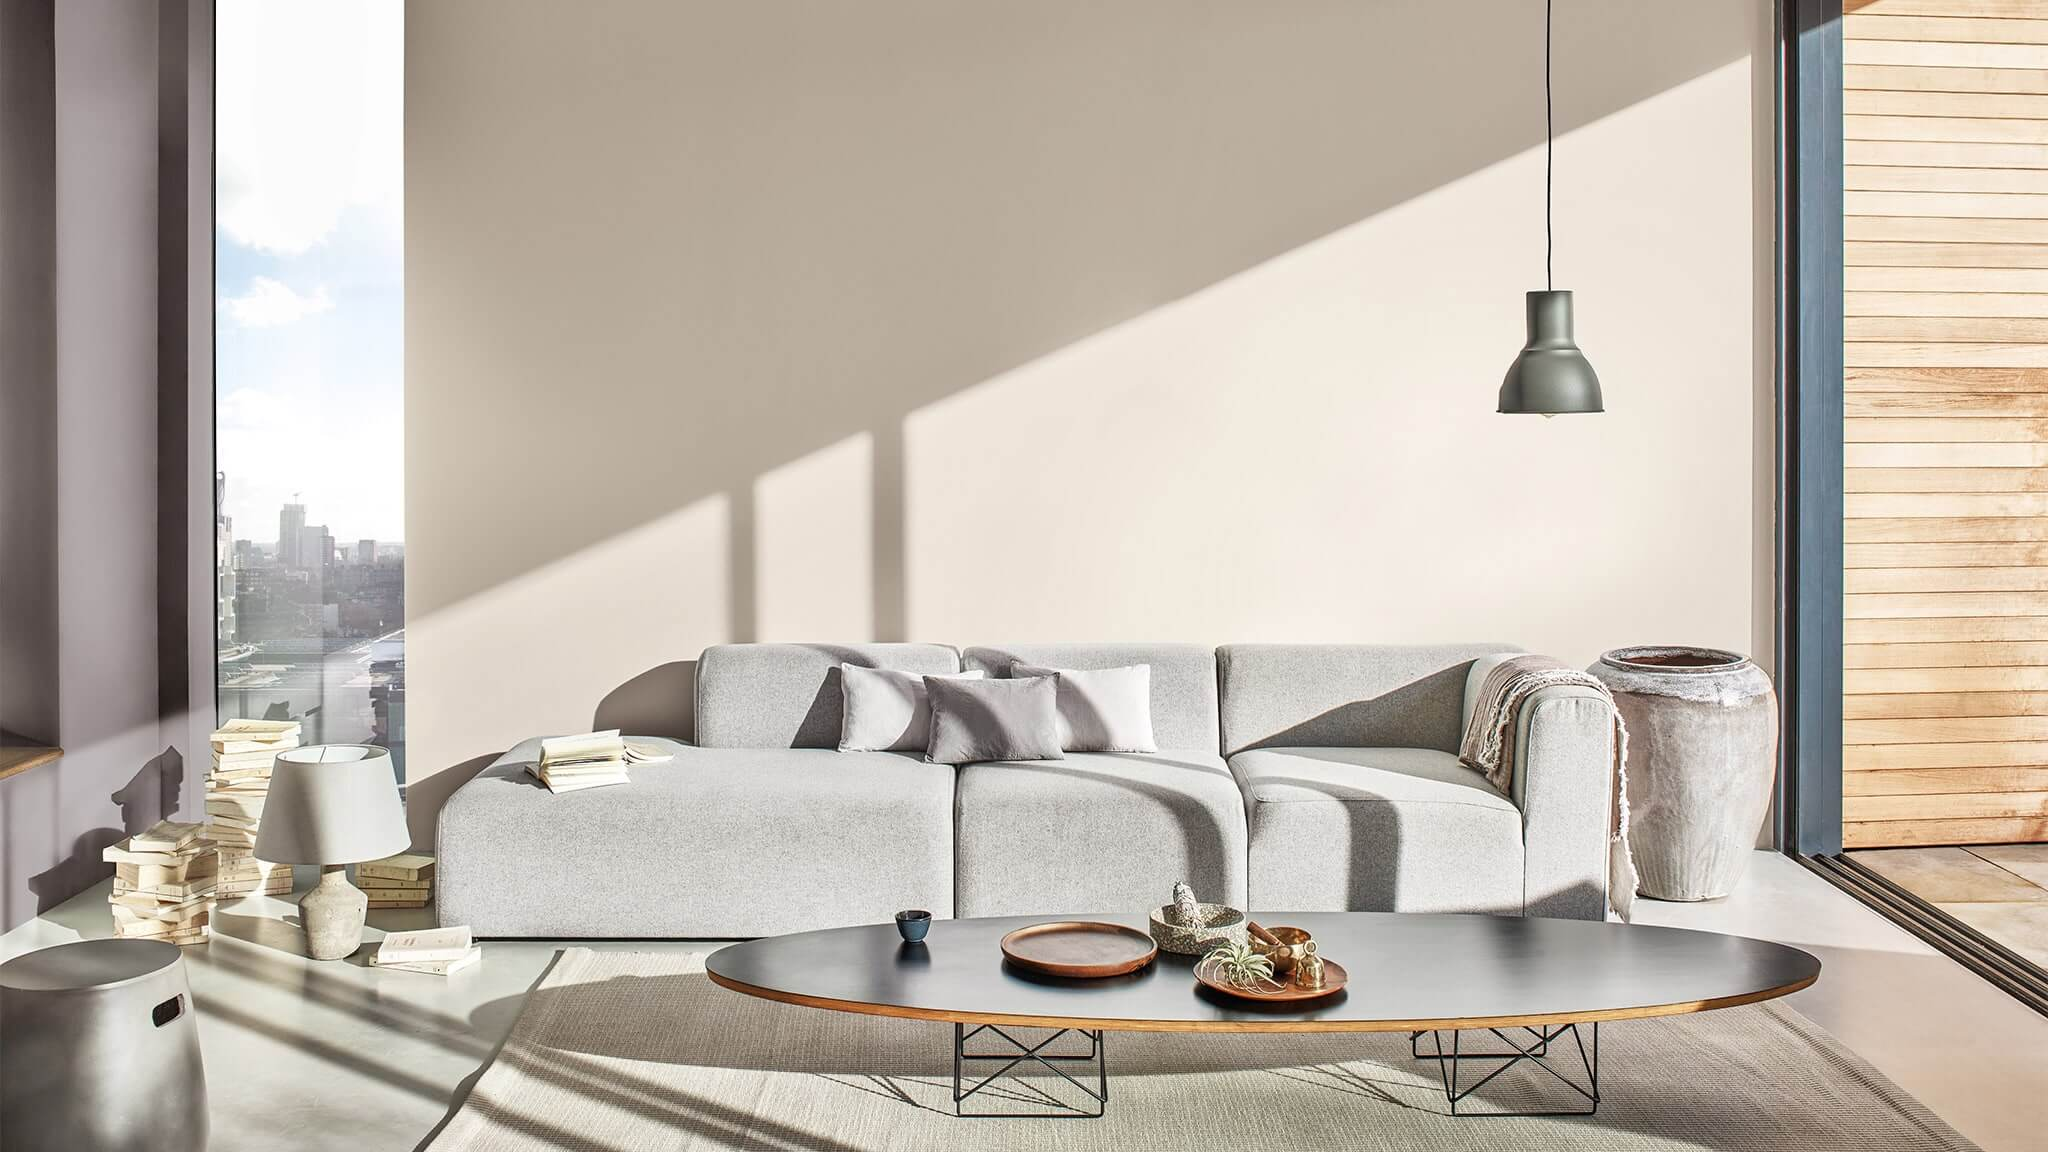 dulux-colour-futures-colour-of-the-year-2020-a-home-for-meaning-livingroom-inspiration-south-africa-3.jpg